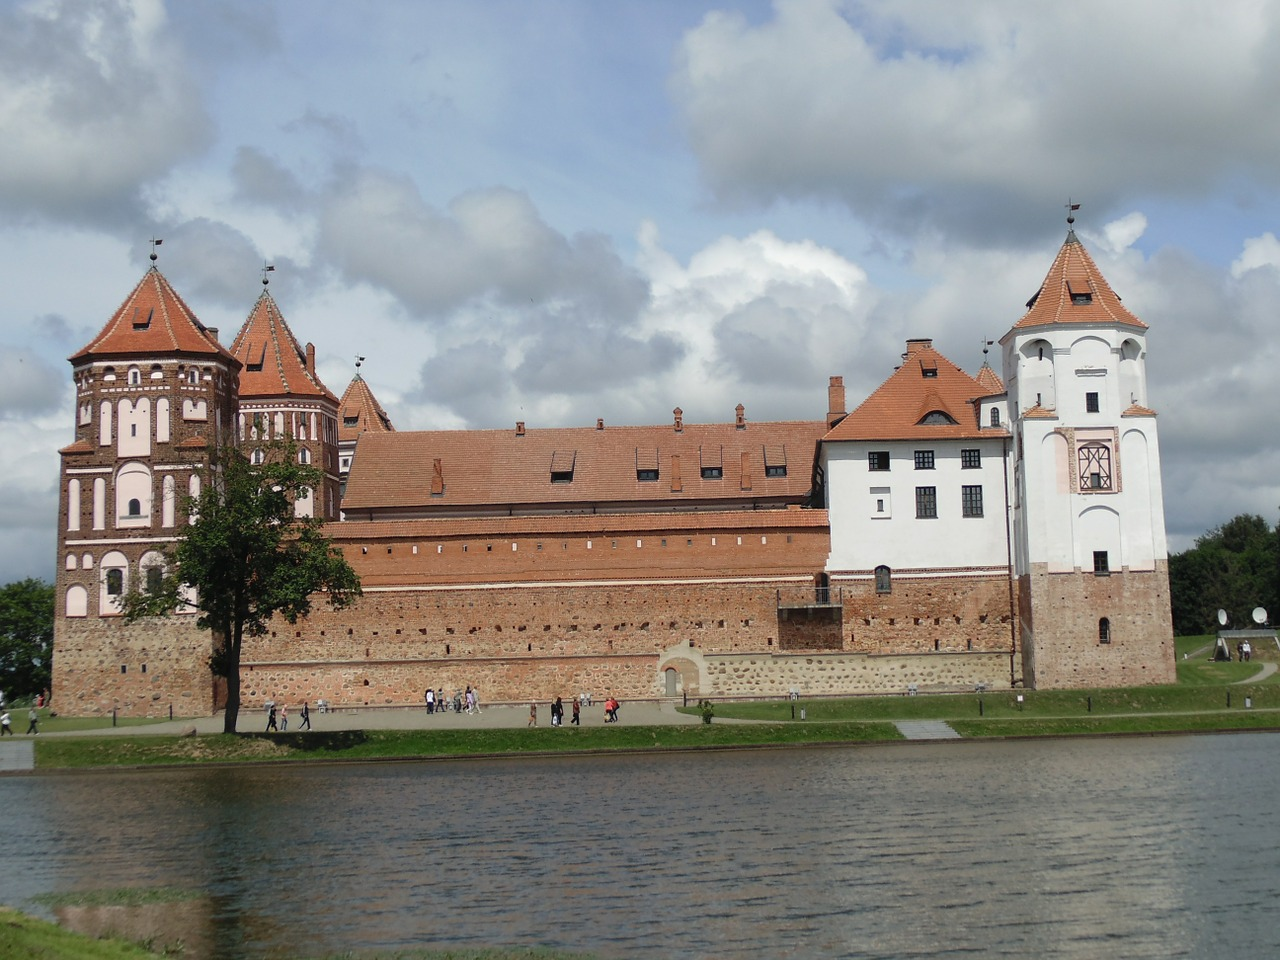 the mir castle,belarus,16 21,free pictures, free photos, free images, royalty free, free illustrations, public domain